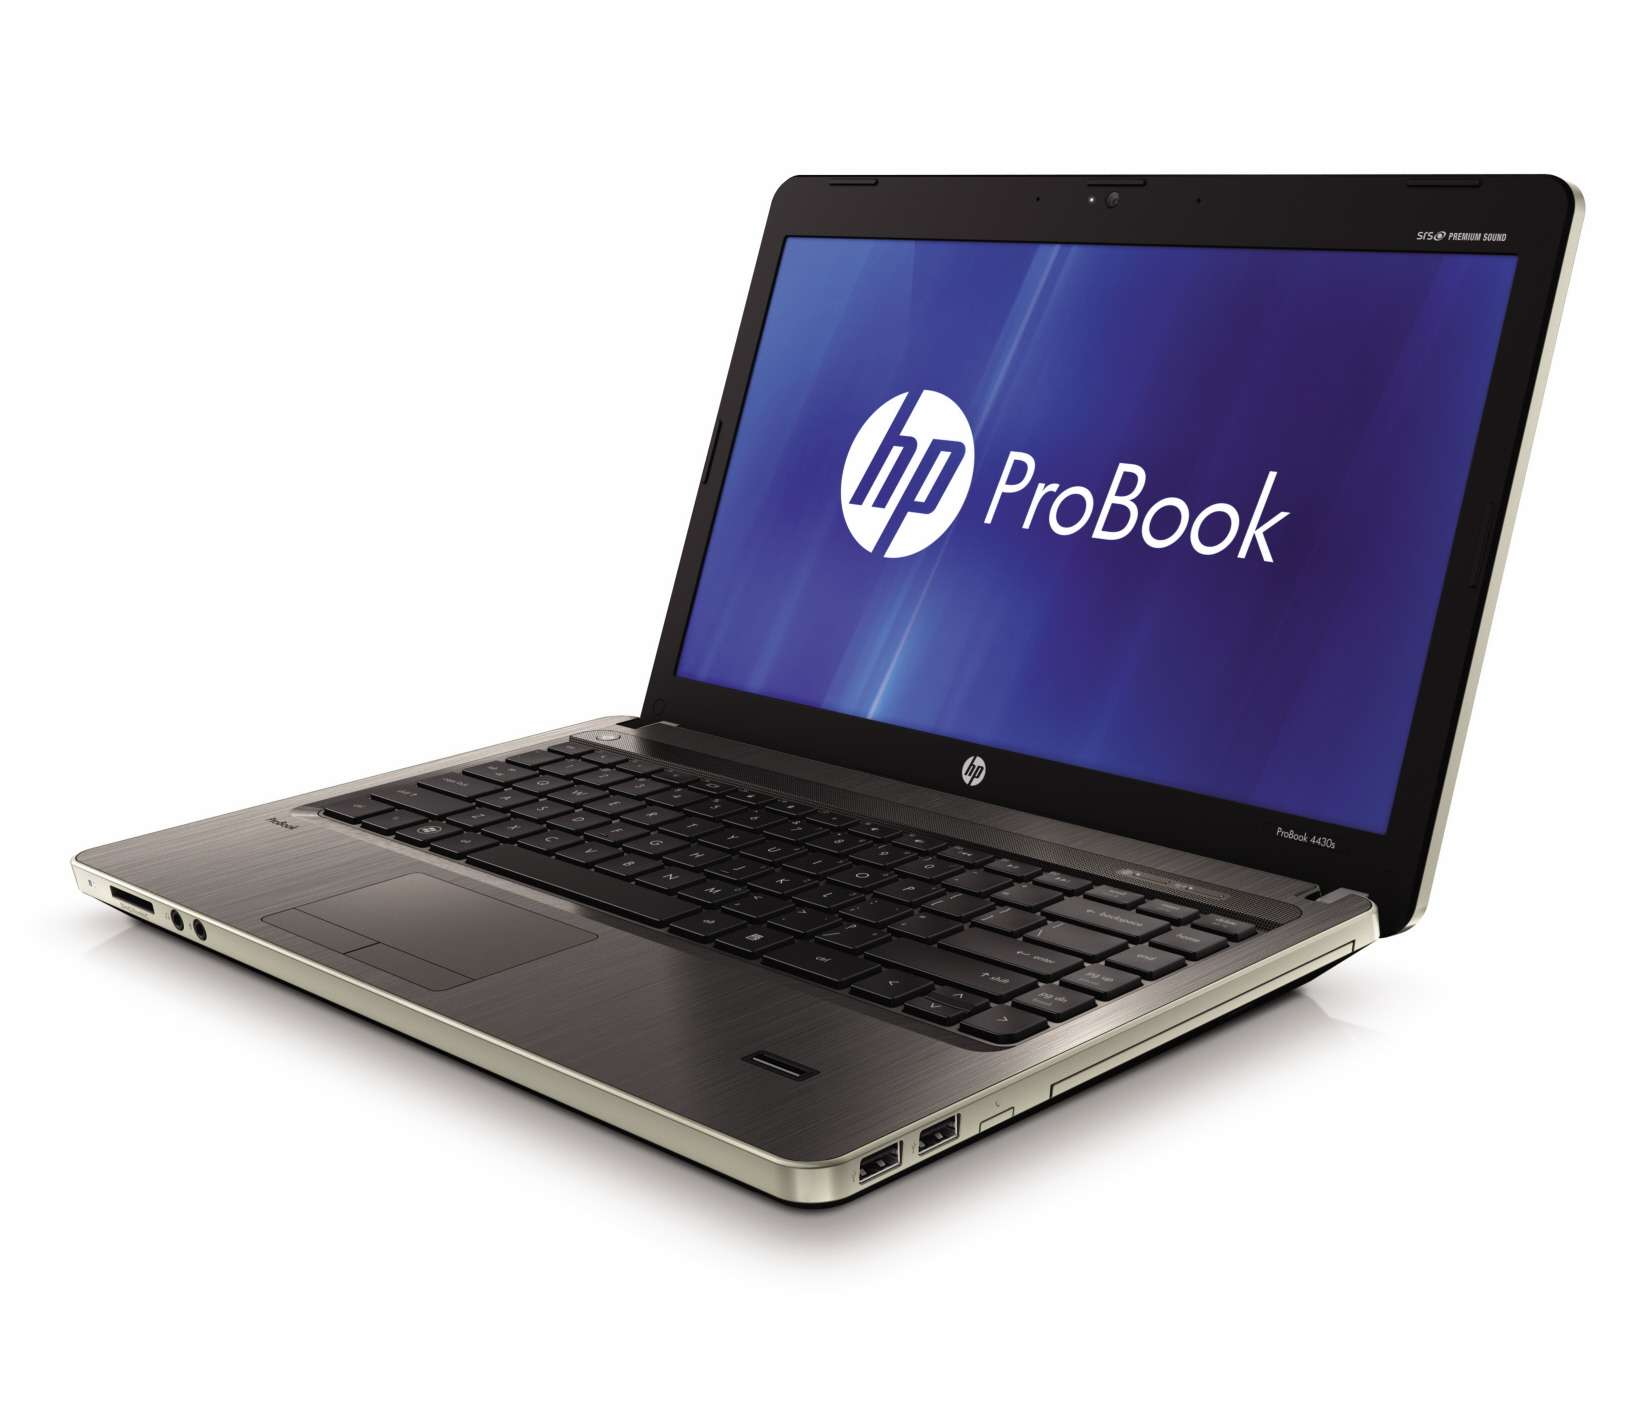 HP ProBook 4530s (Core i5-2520M, RAM 4GB, HDD 320GB, VGA intel HD Graphics 3000, 15.6 inch)